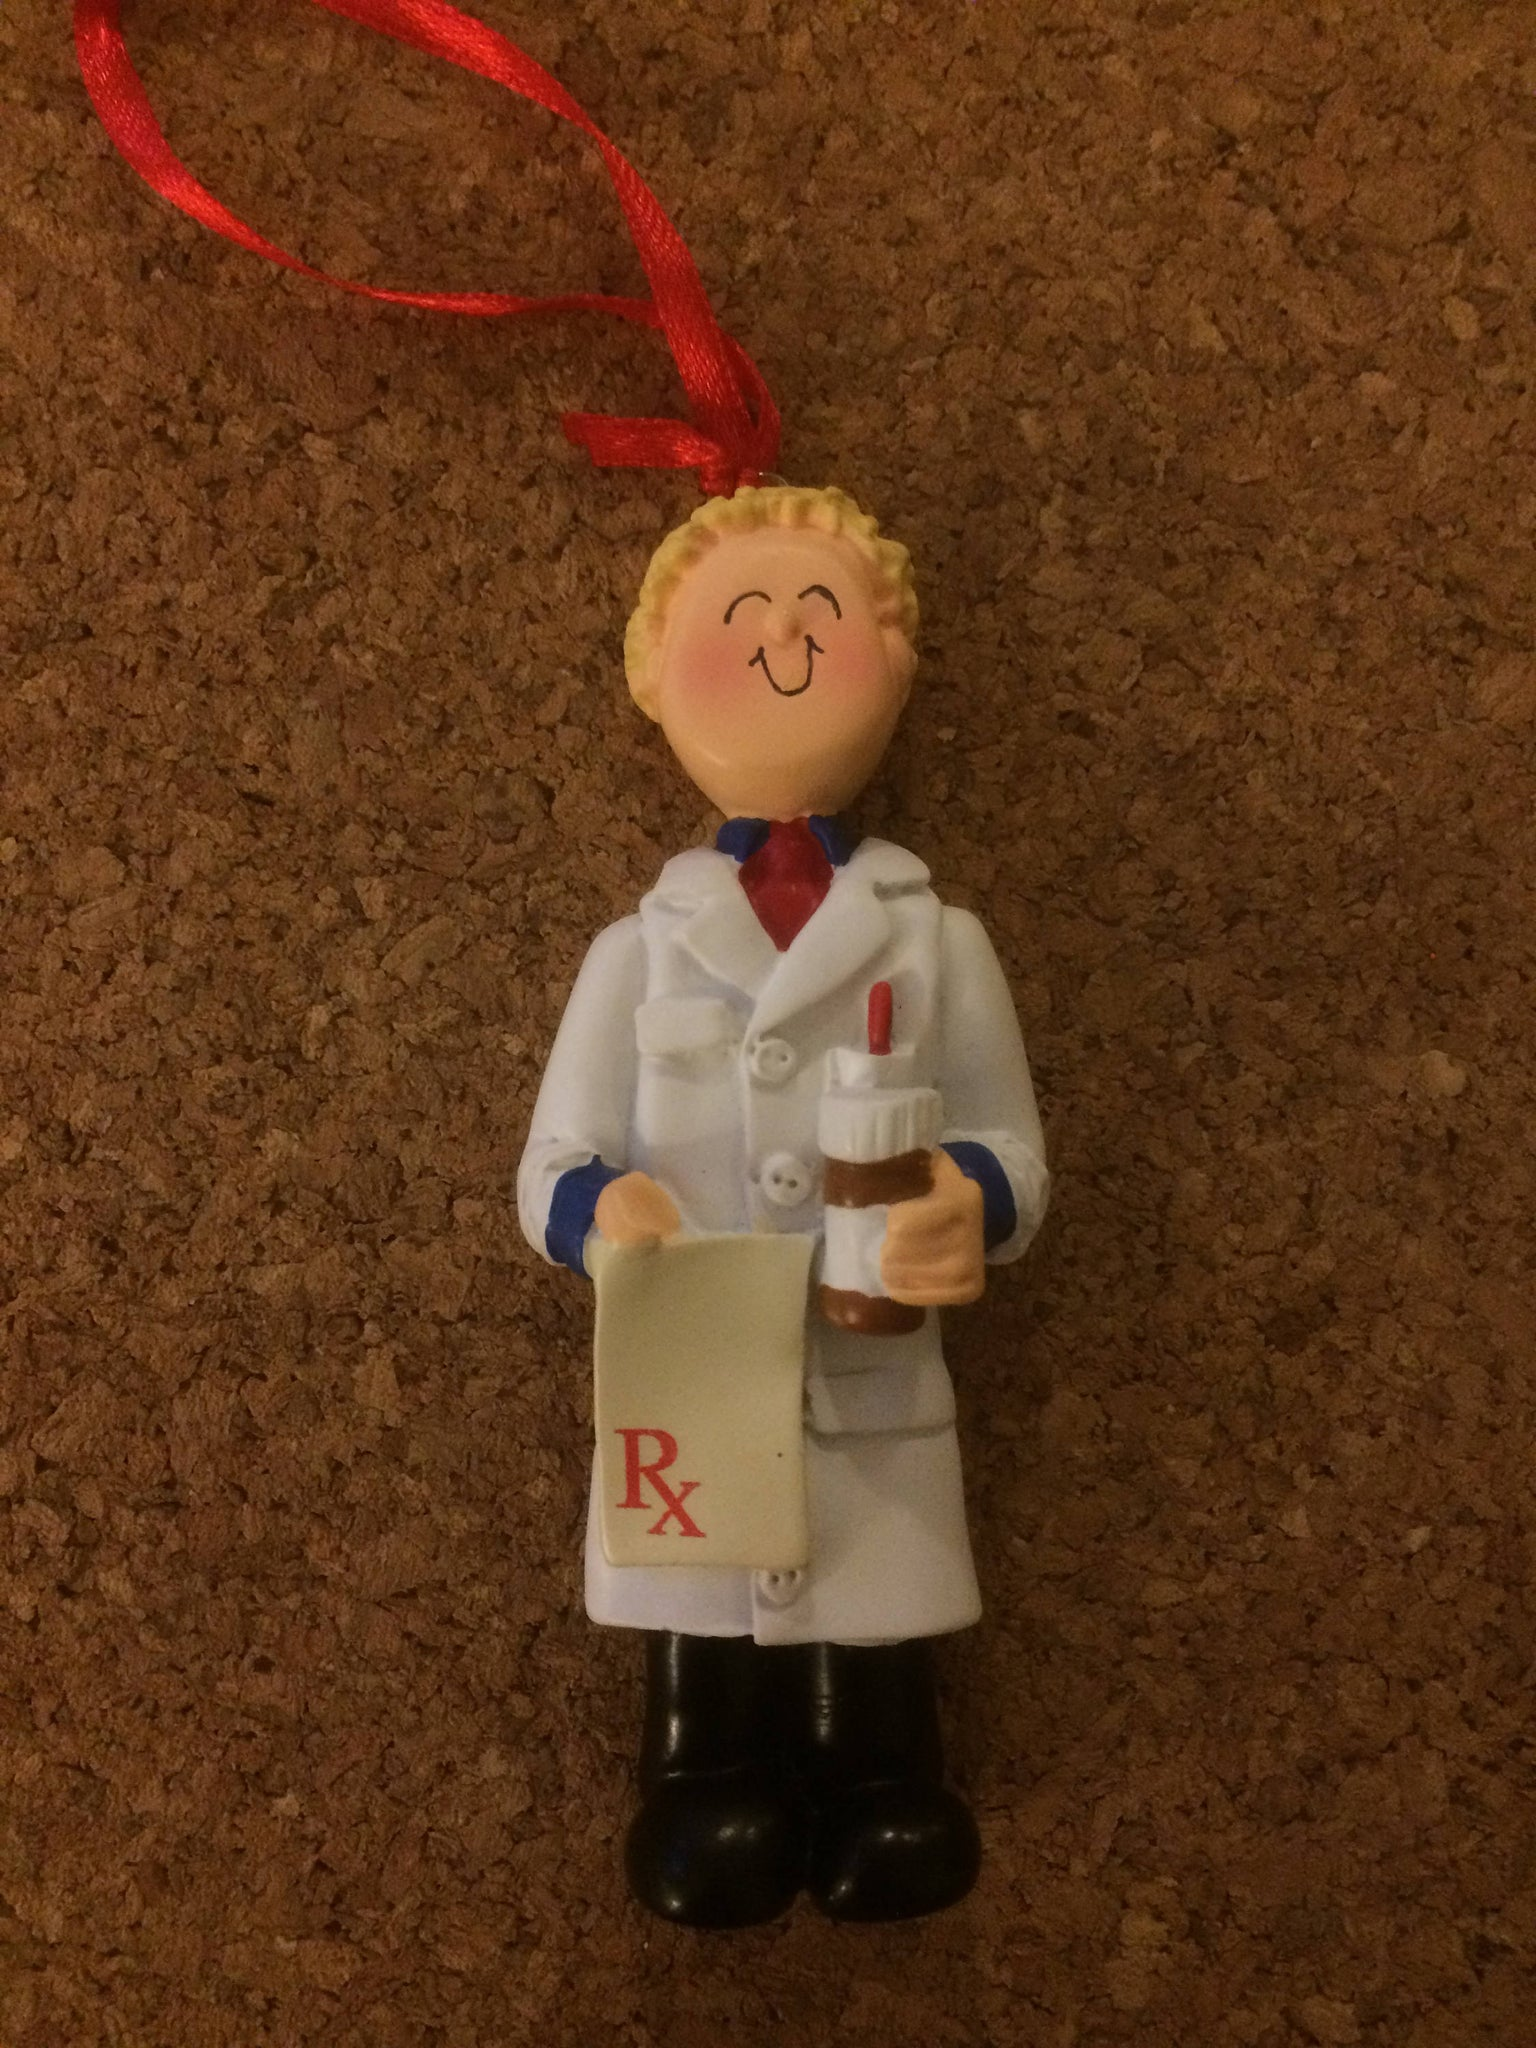 Pharmacist Personalized Pharmacy Ornament